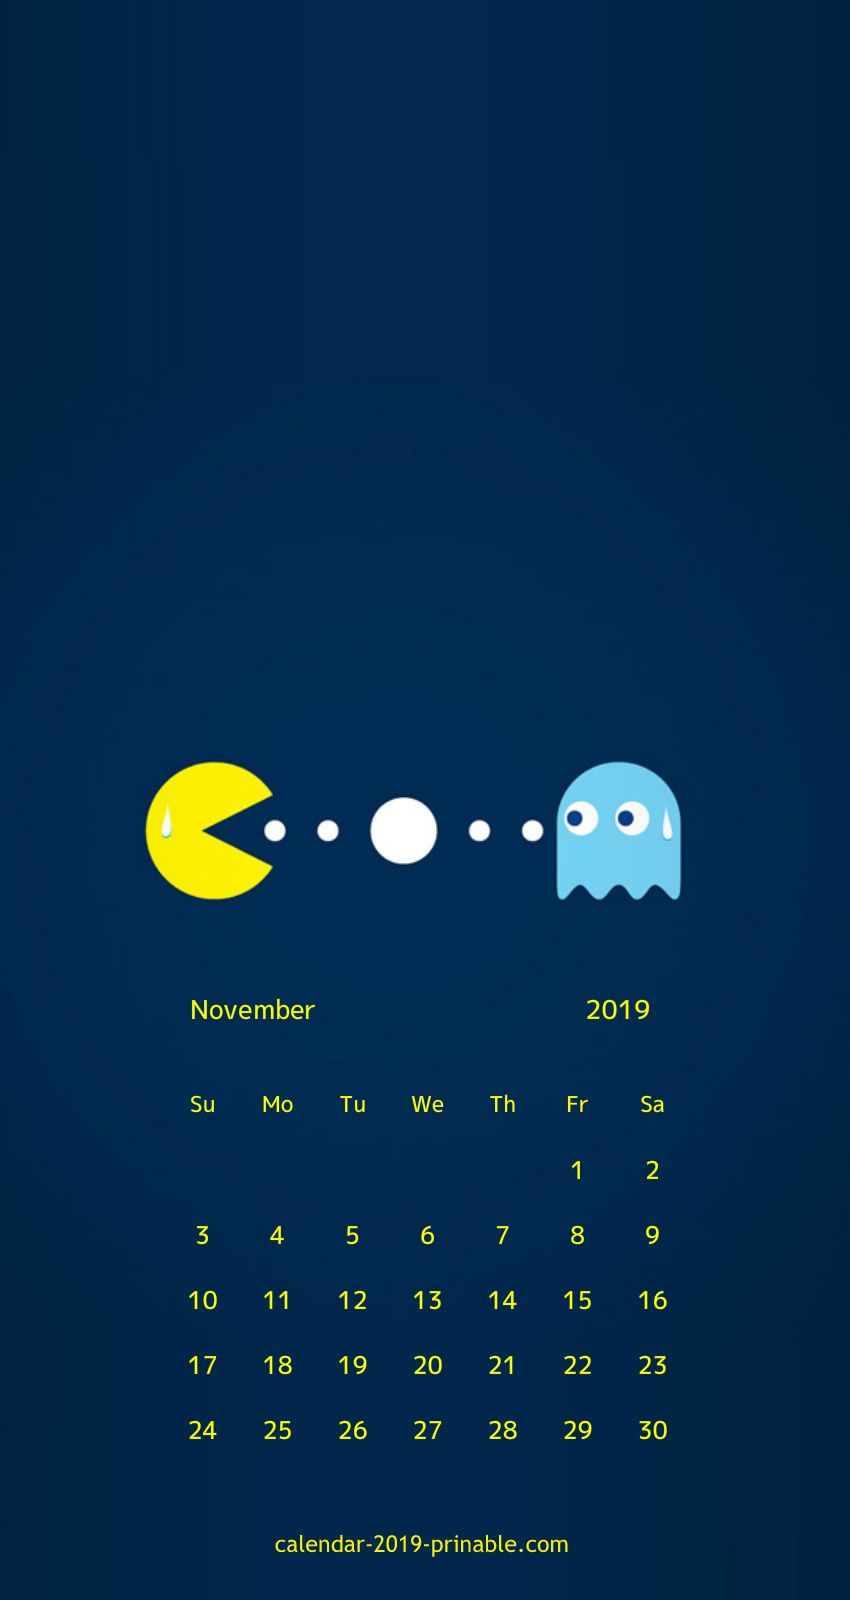 november 2019 iphone calendar wallpaper Wallpapers and Stuff 850x1600